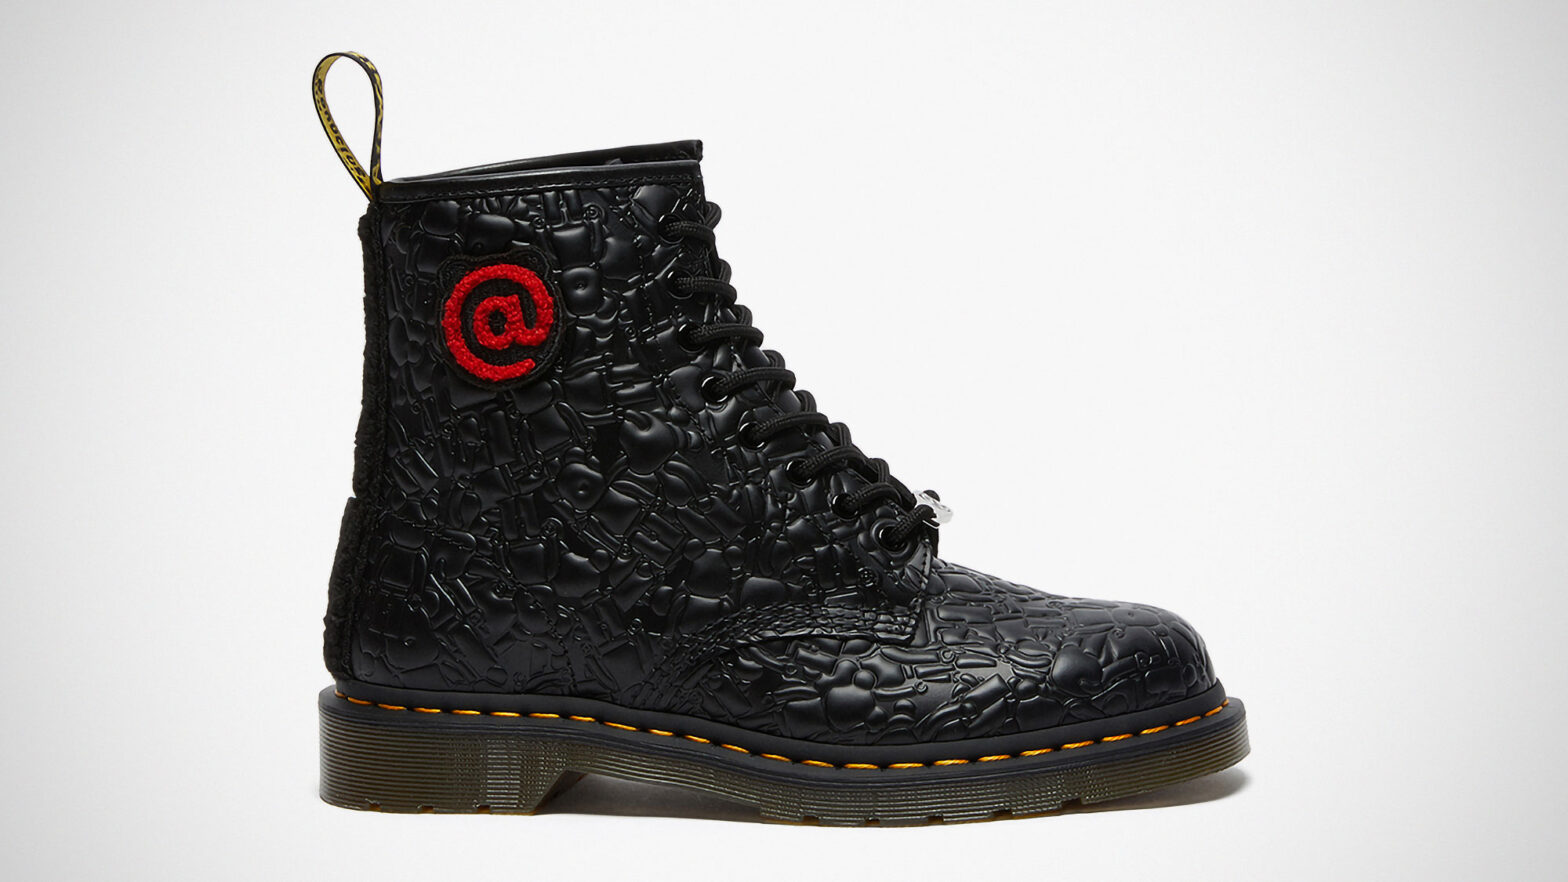 Dr. Martens x Medicom Toy 1460 Remastered